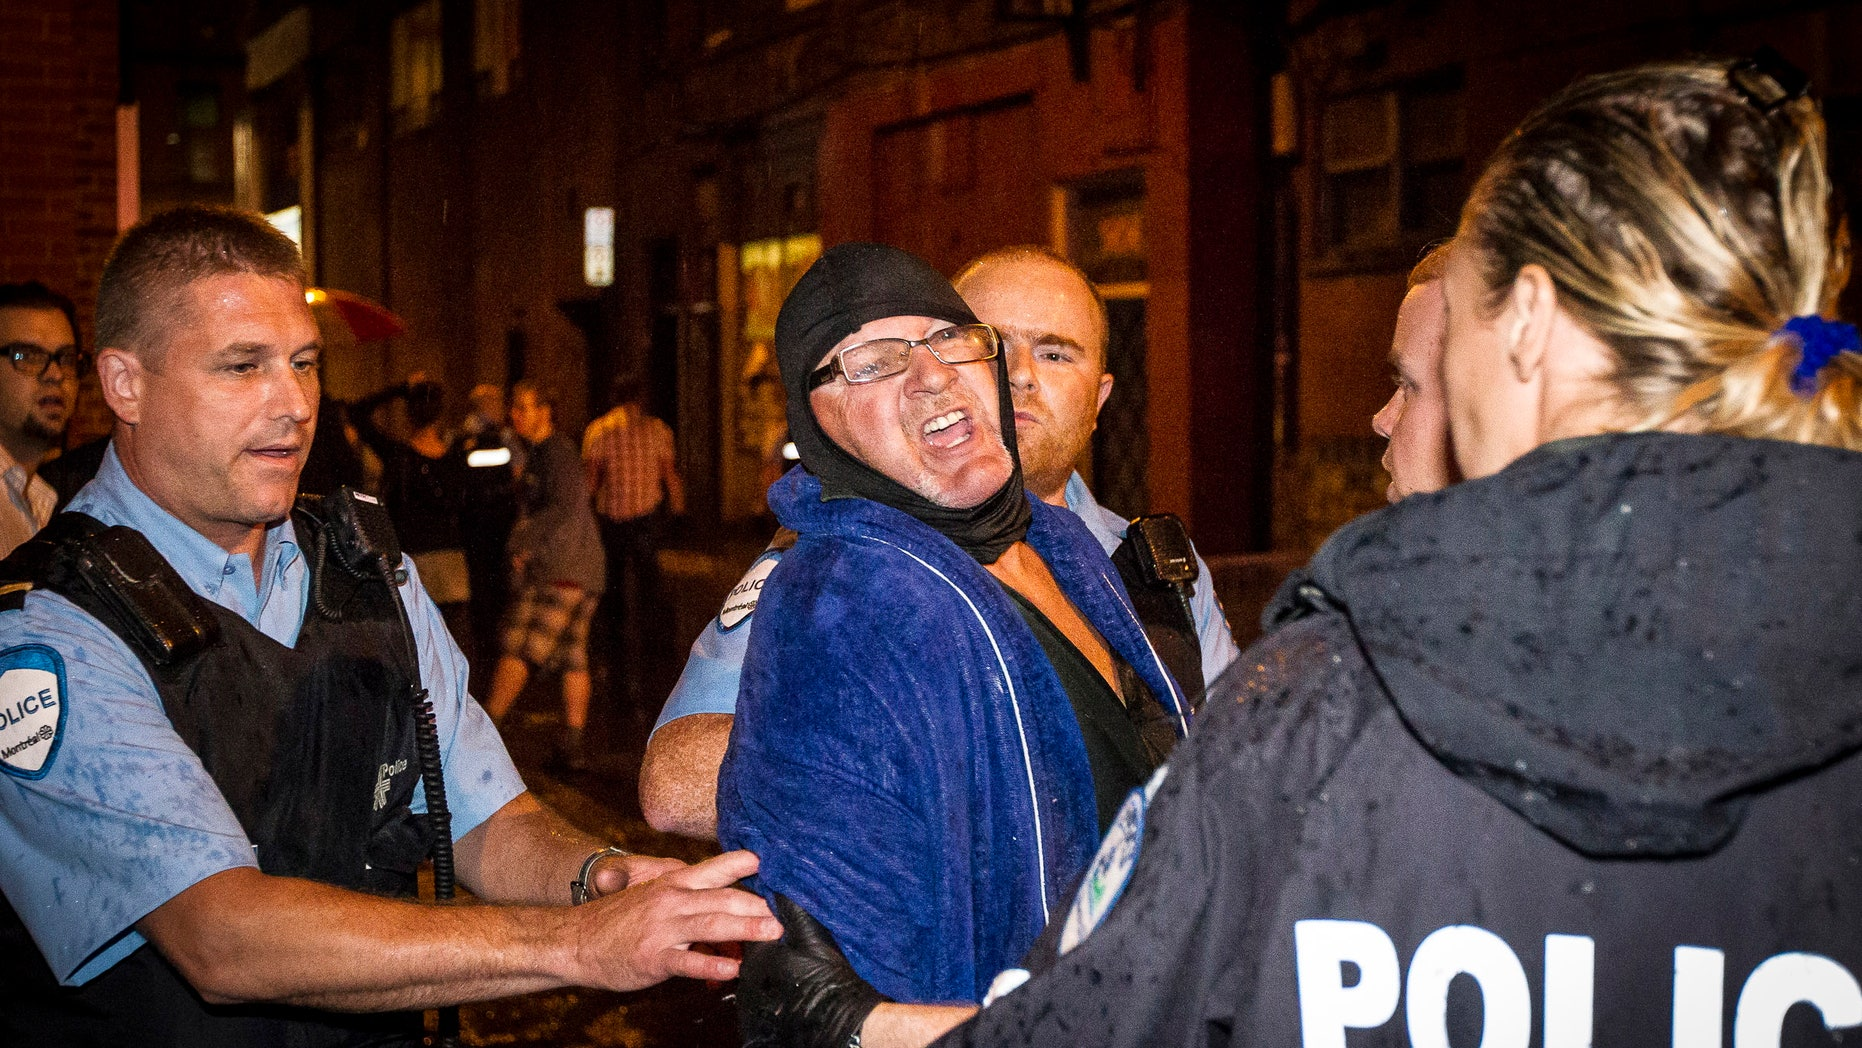 Sept. 5, 2012: A masked gunman wearing a blue bathrobe opened fire during a midnight victory rally for Quebec's new premier, killing one person and wounding another.